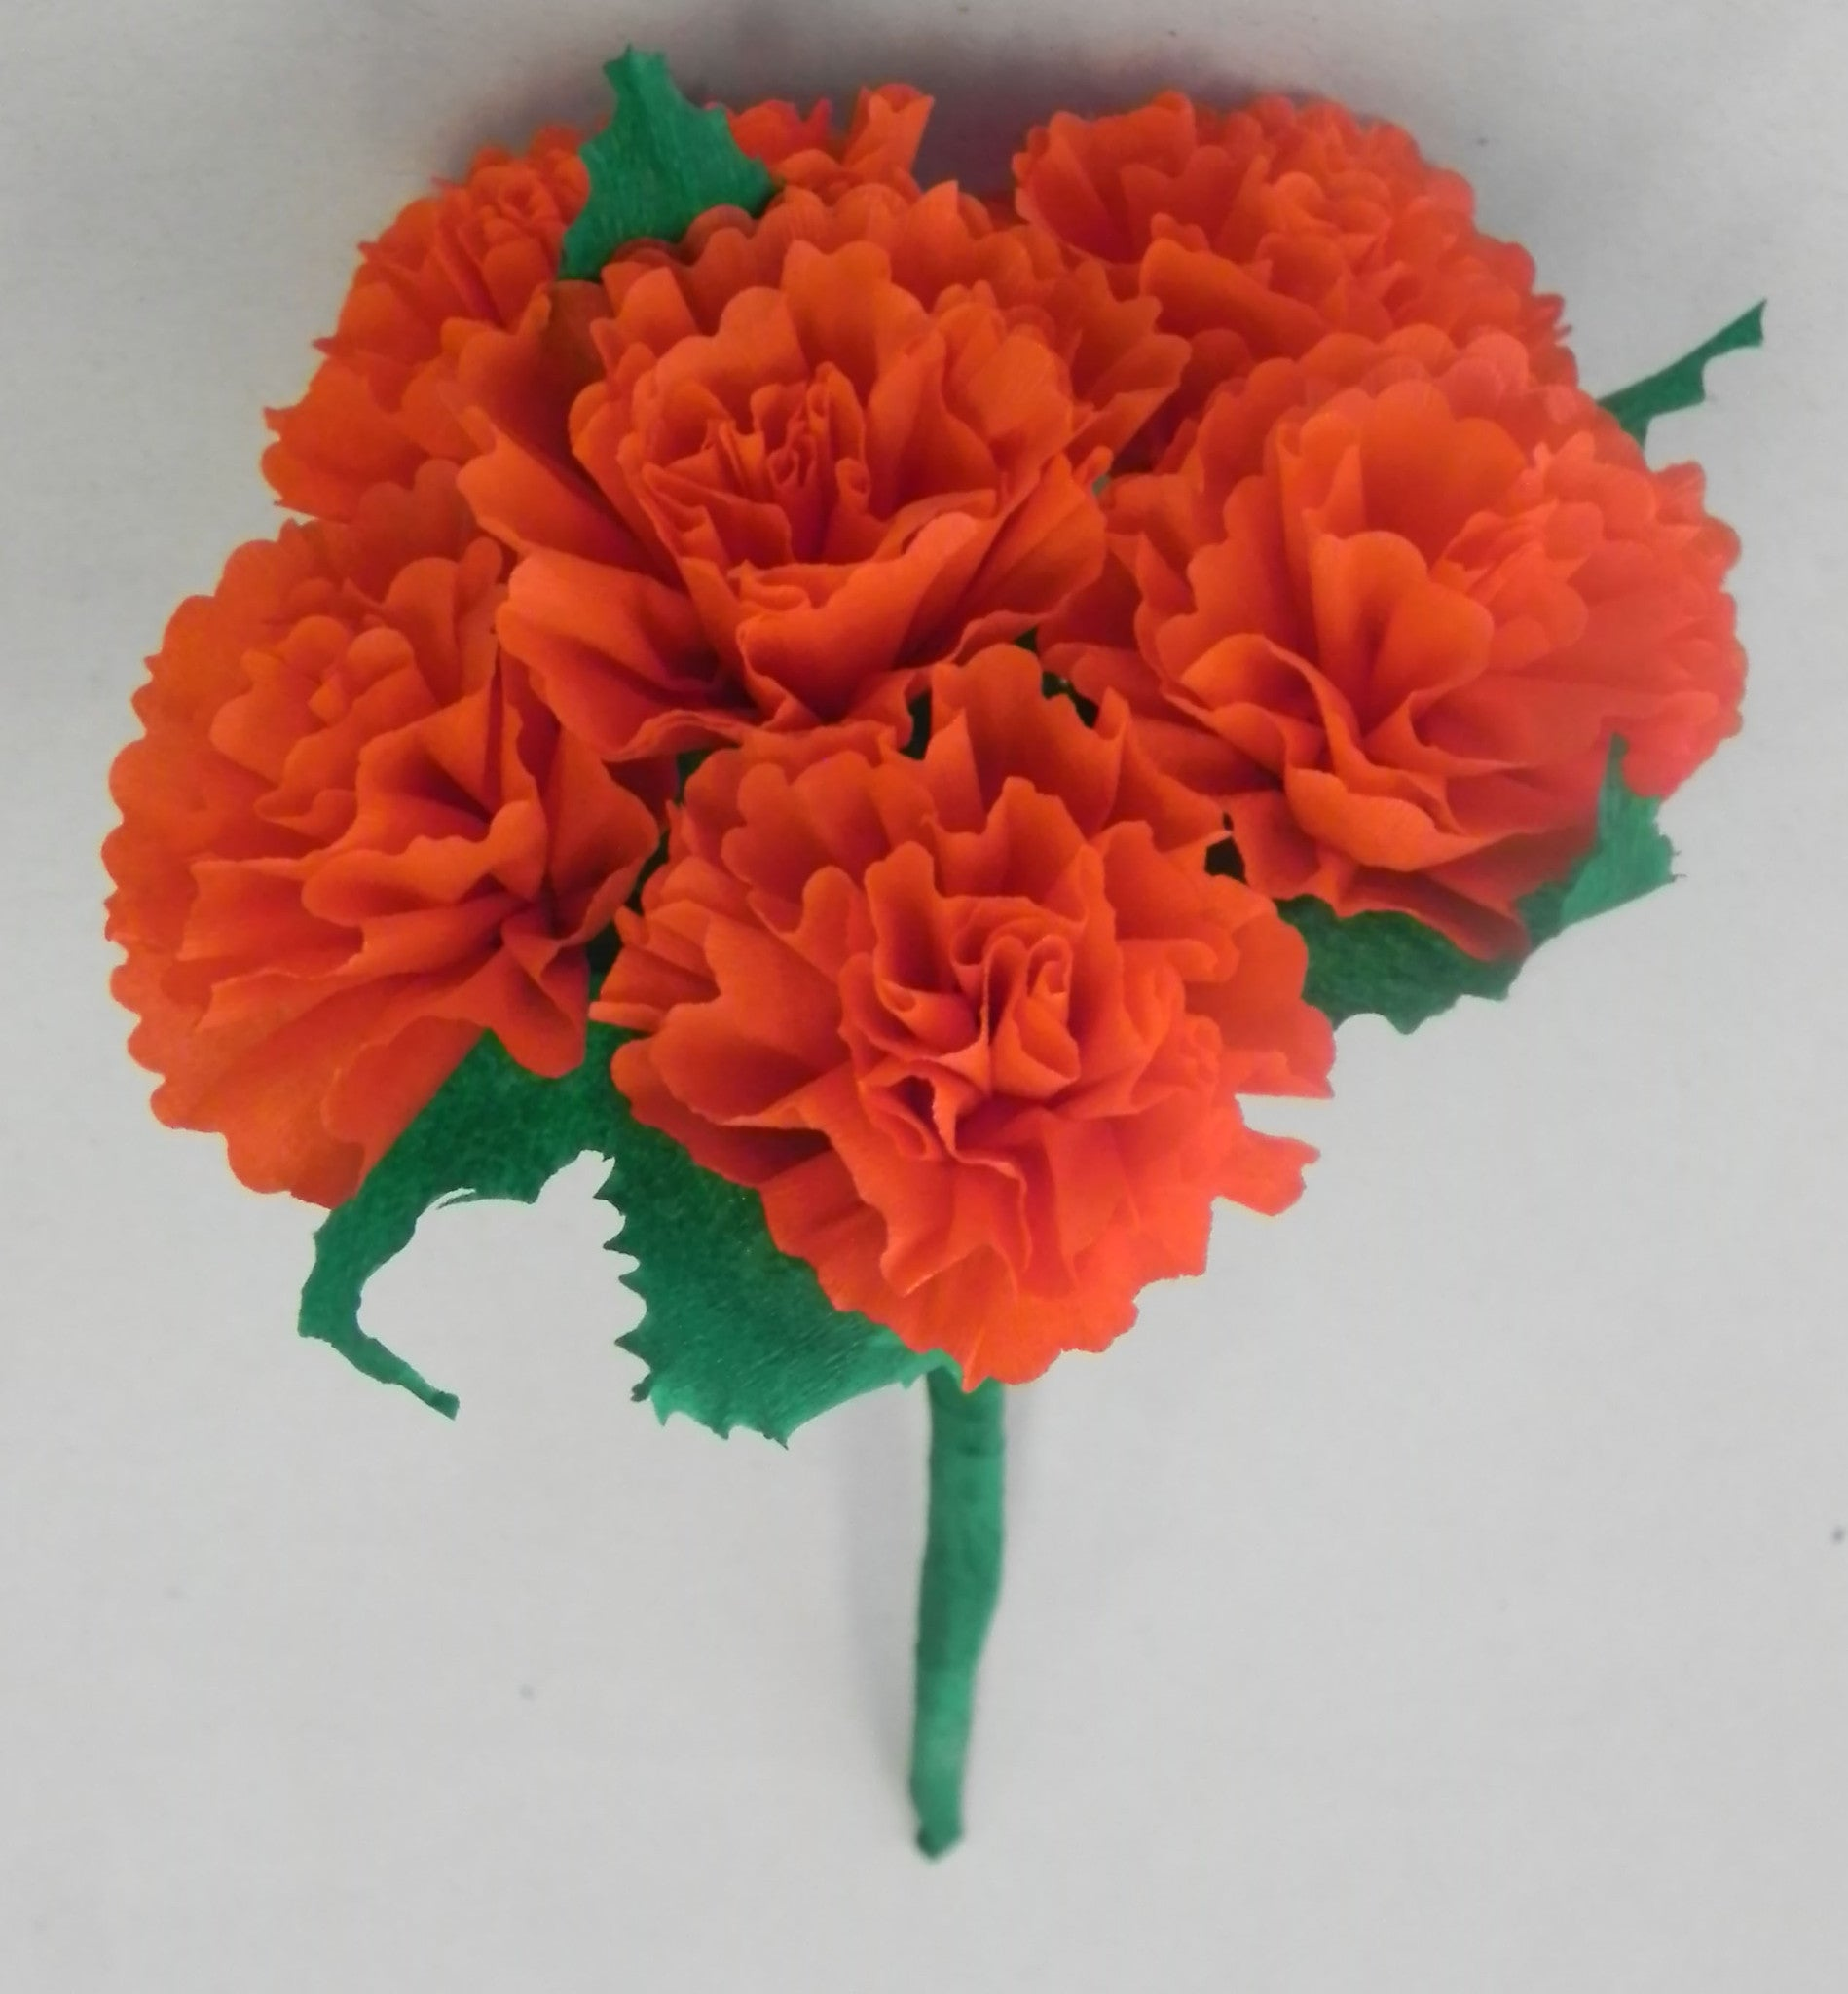 Free shipping mexican crepe paper flowers bouquet of 6 by julia free shipping mexican crepe paper flowers bouquet of 6 by julia orange paper flowers by julia mightylinksfo